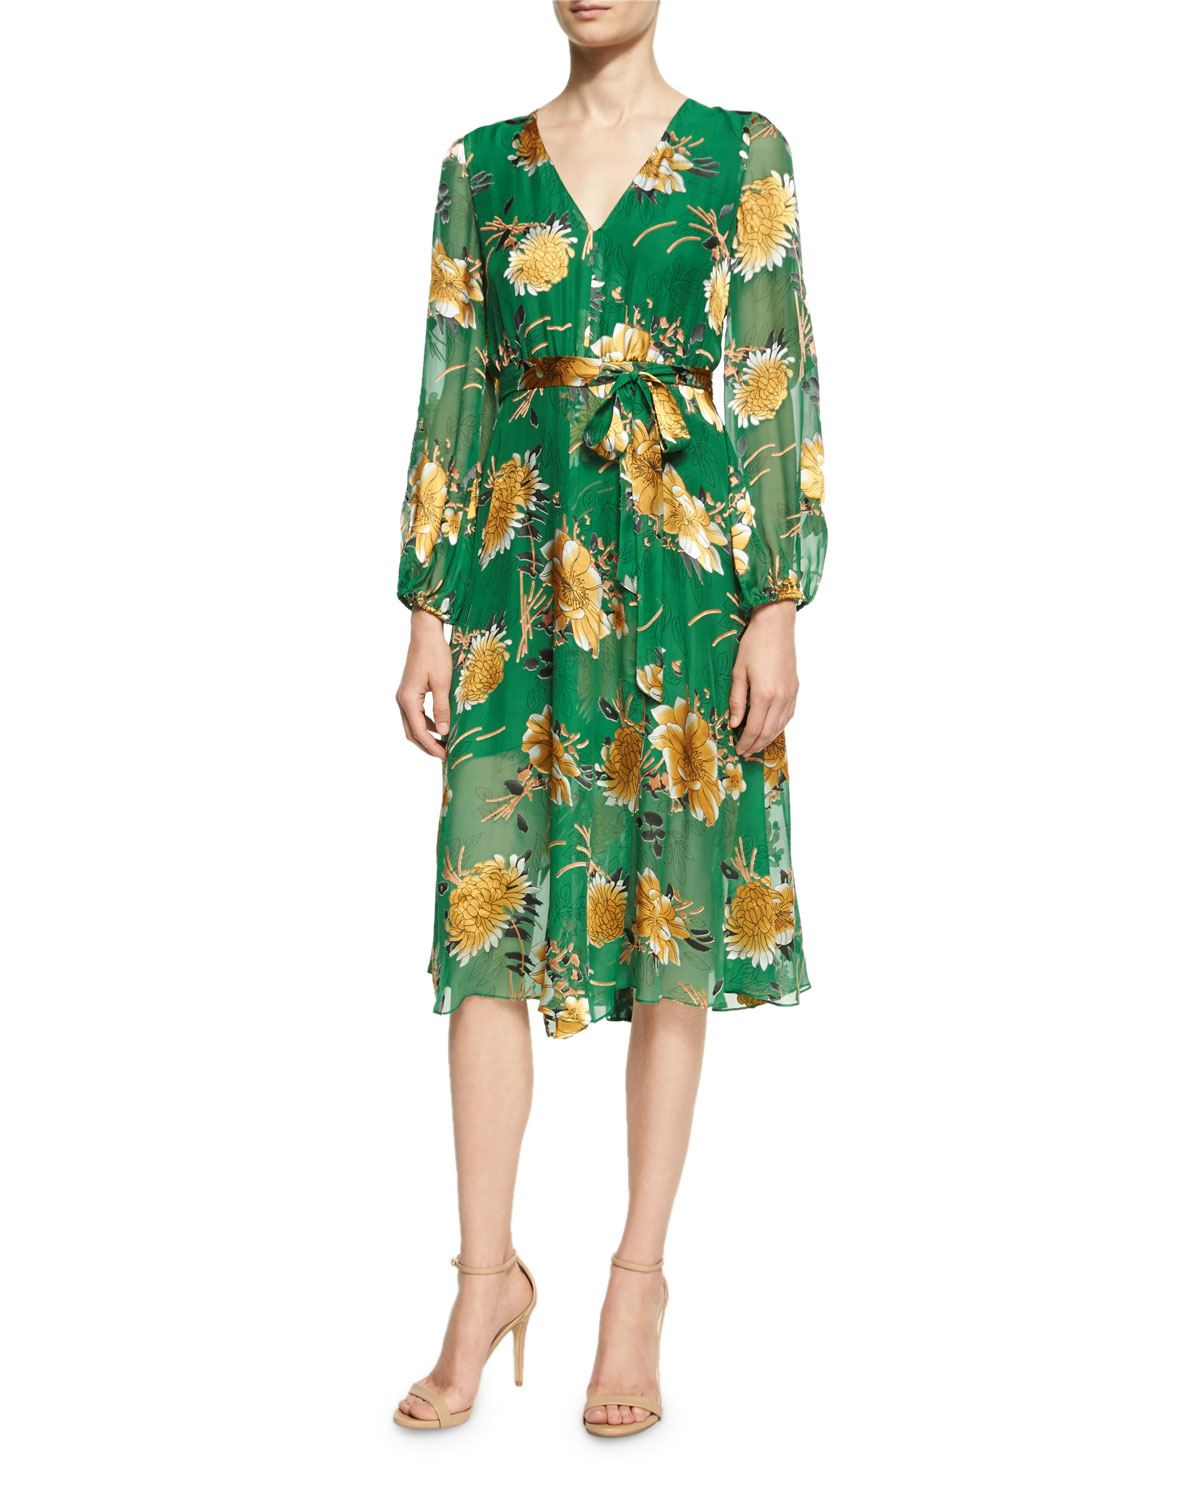 Alice+olivia Woman Jacquard Gown Green Size 2 Alice & Olivia